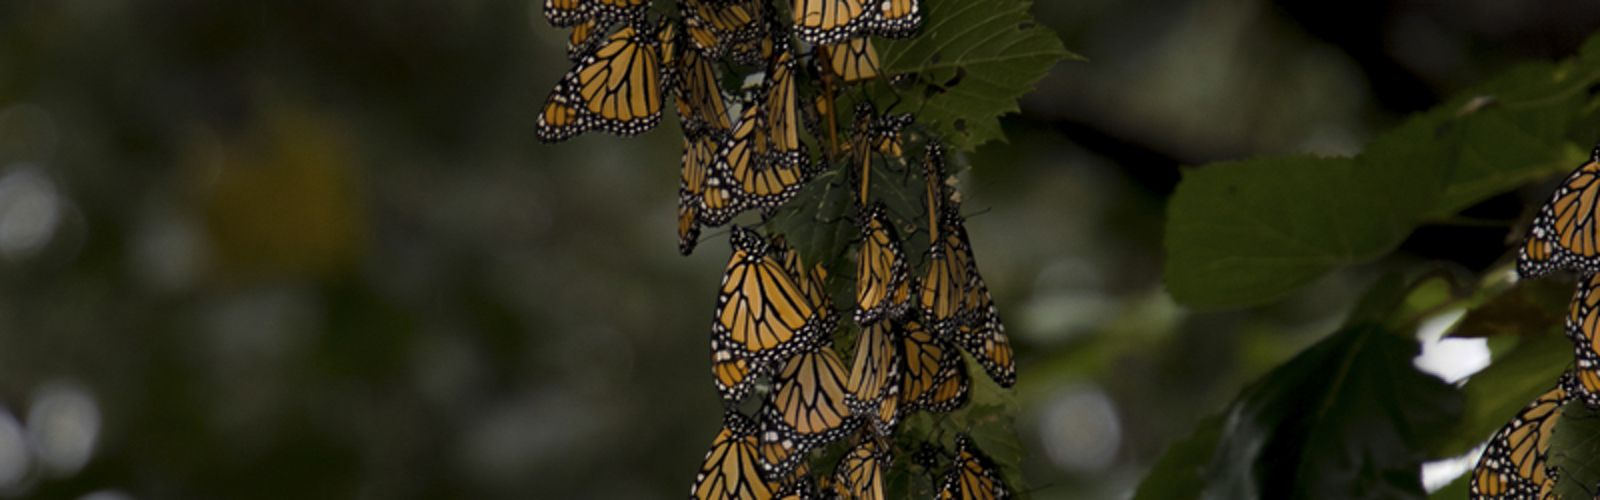 A large group of monarch butterflies rests in the trees at Cleveland's Wendy Park on the shore of Lake Erie. In autumn these butterflies left their Canadian home and crossed the expansive lake as they began the great journey south. They rested and refueled for only a couple of days before getting back in the air to continue their incredible journey.